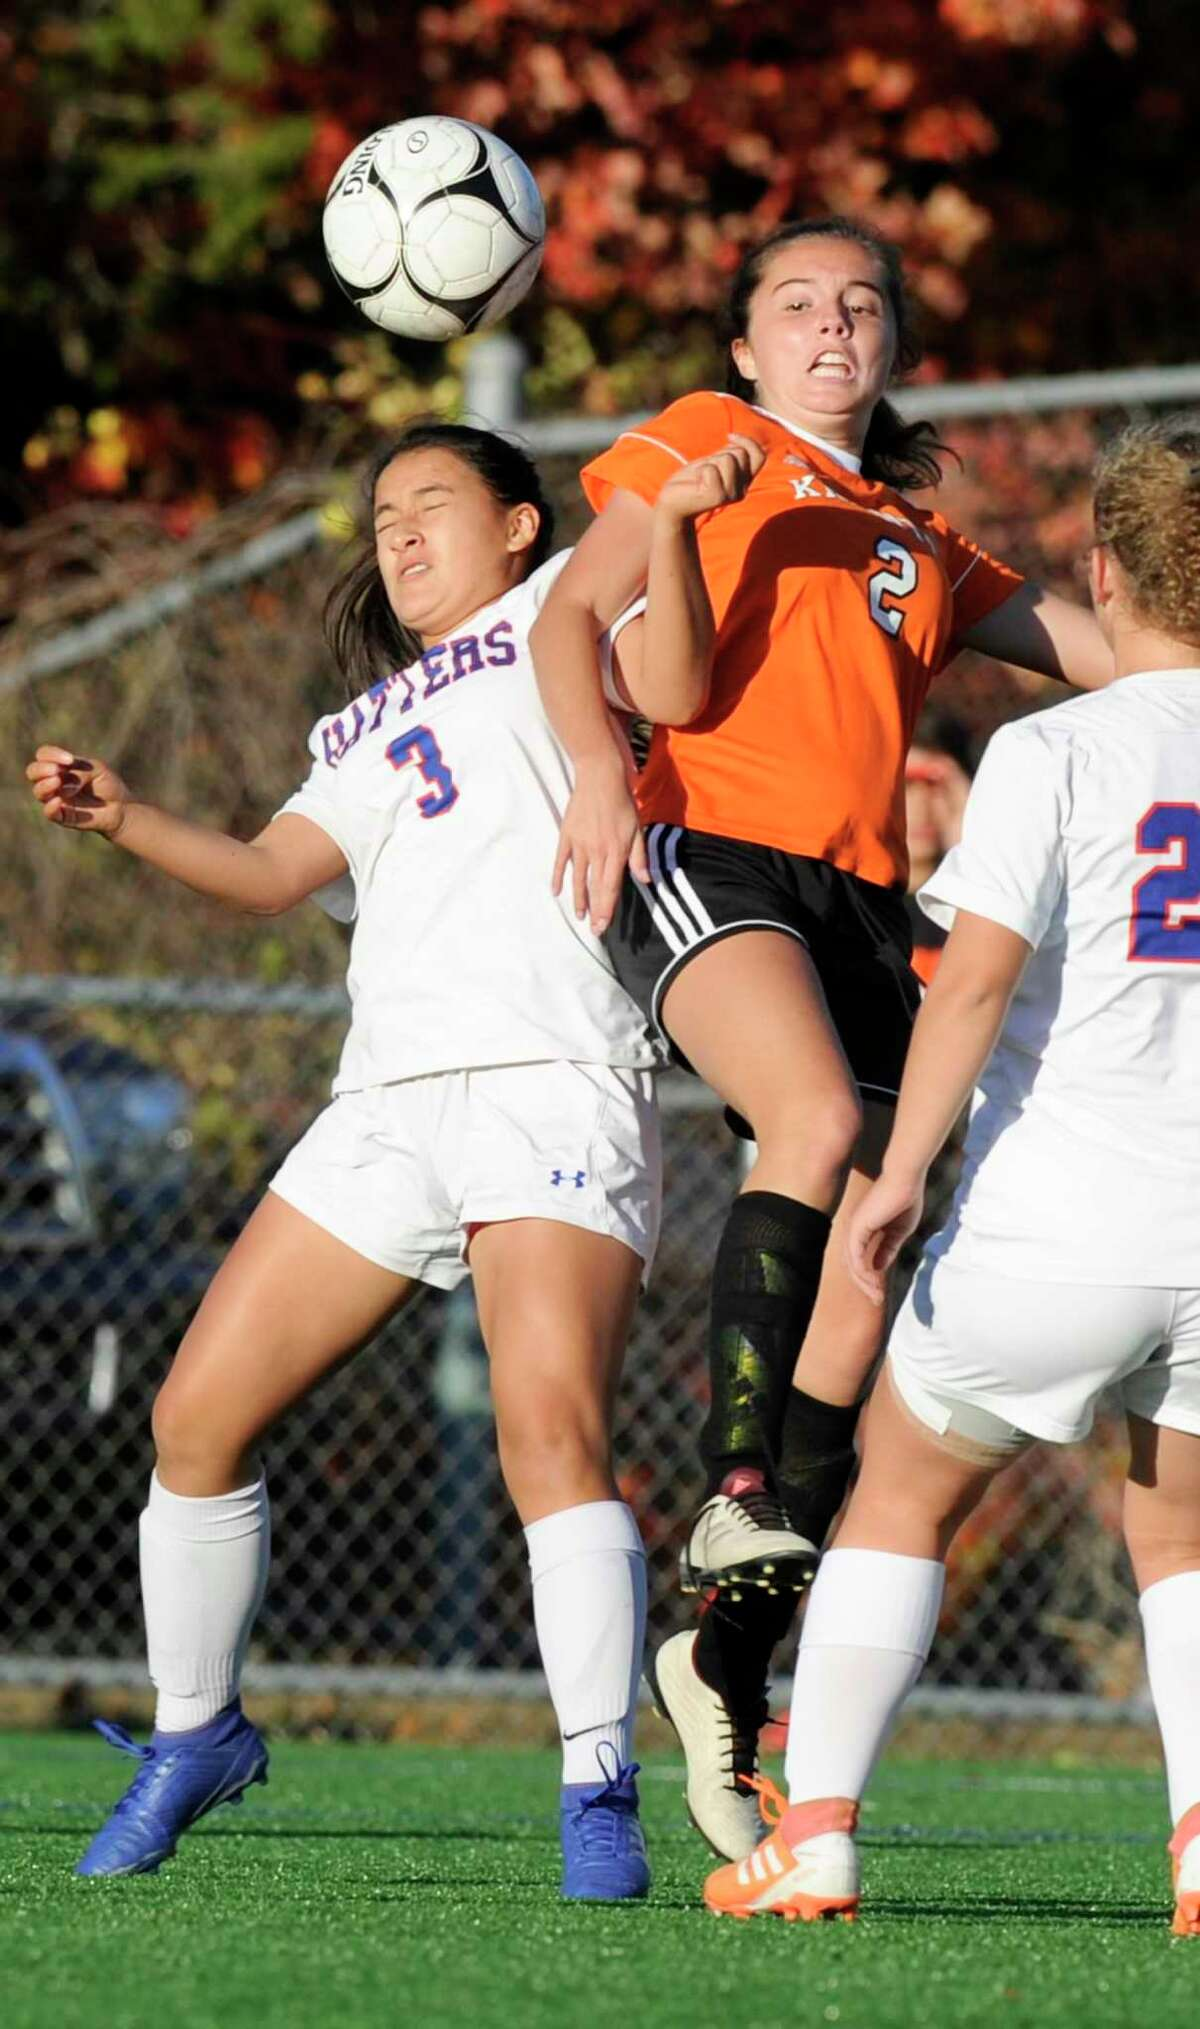 Danbury's Karrina Furtado (3) and Stamford's Claire Salerno (2) battle for the ball in the second half of a girls soccer match in Stamford on Oct. 23, 2019. Danbury won 6-2.